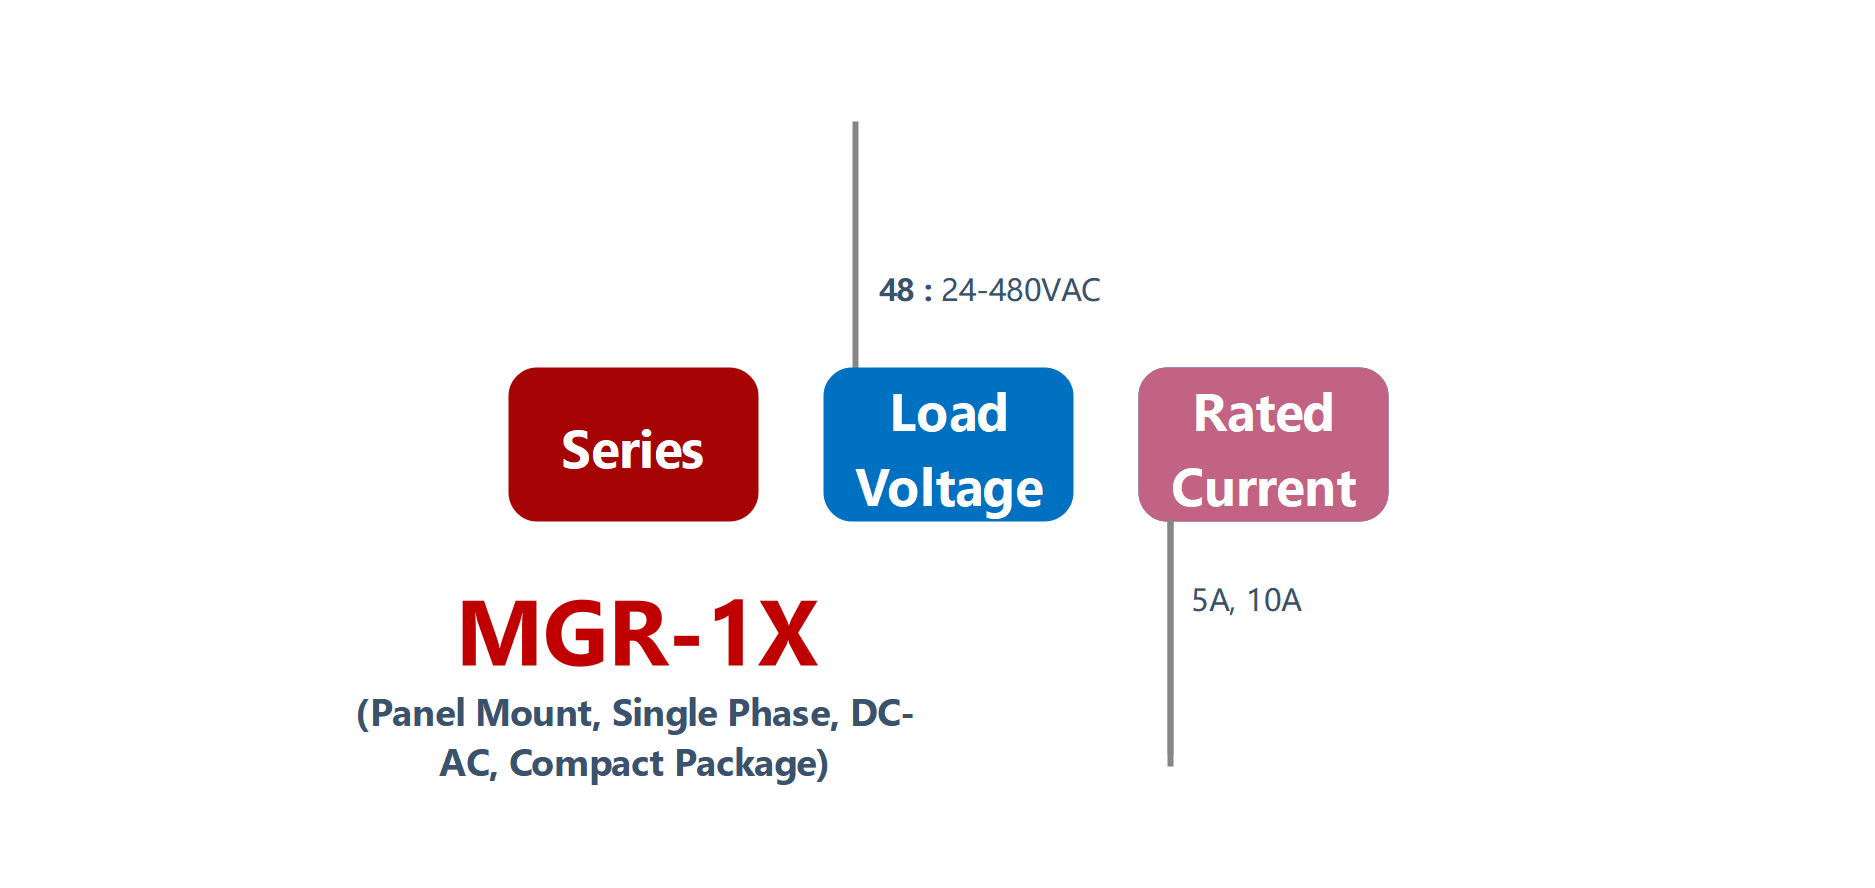 How to order MGR-1X Series Panel Mount Solid State Relay